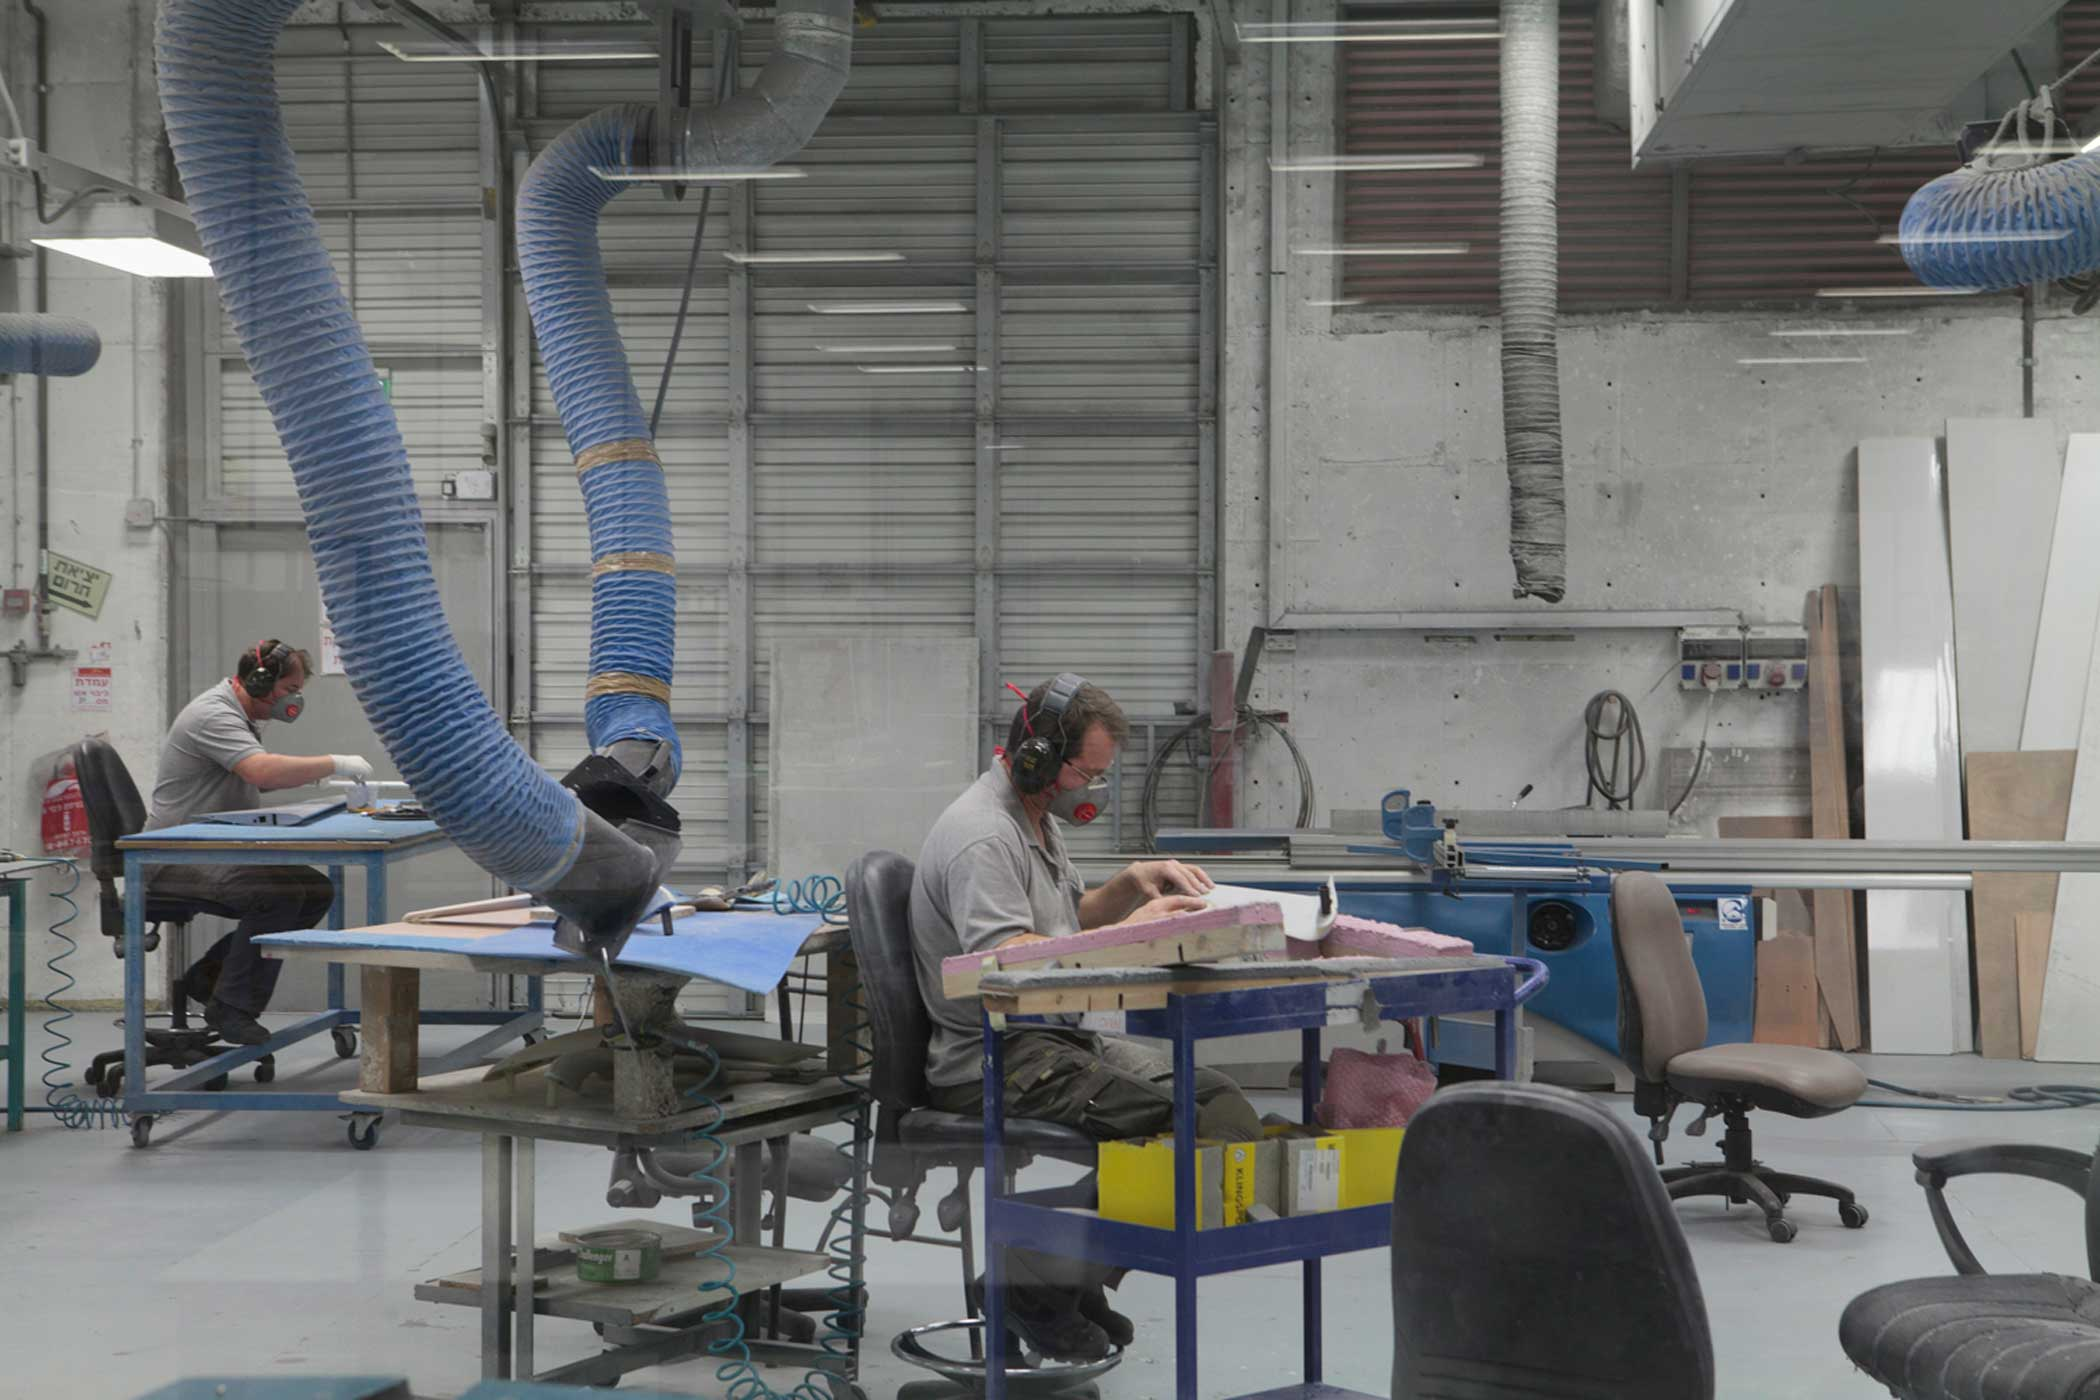 Employees working on airframe components inside the Aeronautics factory in Yavne, Israel.                                                               The bodies of modern UAVs are mostly made up of composite materials. At the Aeronautics factory, workers employ a series of labor-intensive processes in which thin sheets of composite materials are combined to create solid pieces of the drone's airframe.